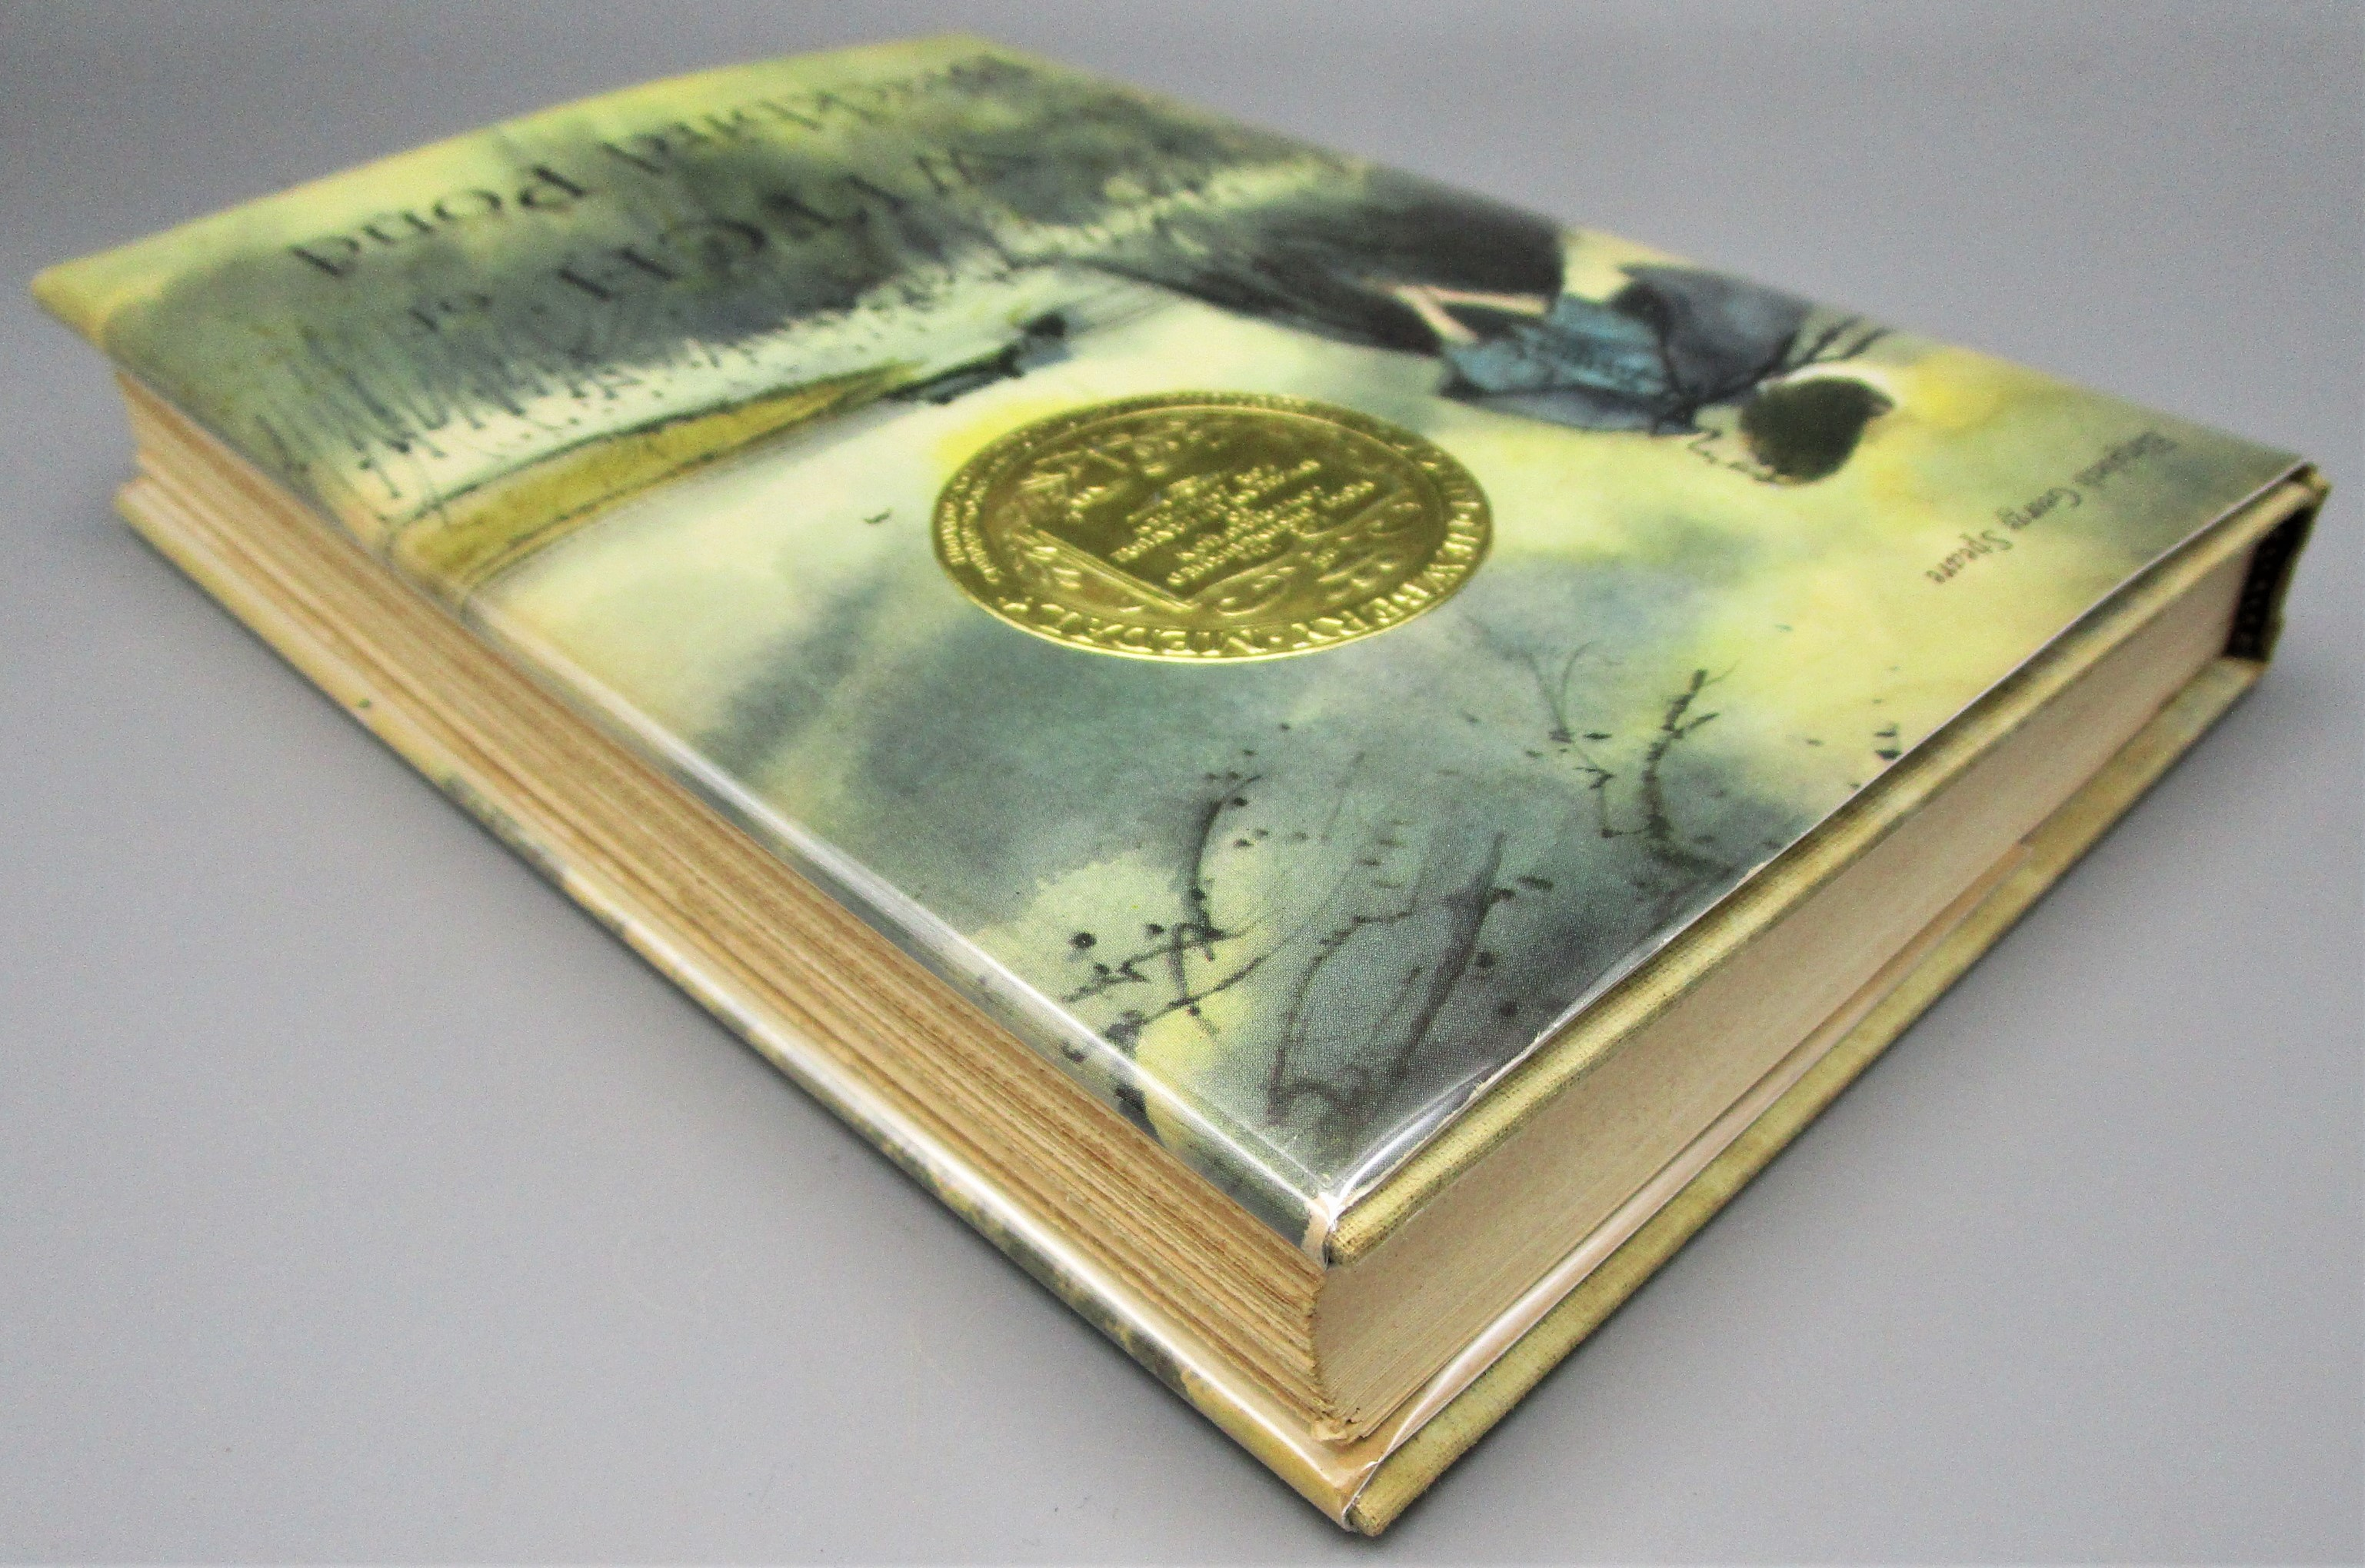 THE WITCH OF BLACKBIRD POND, by Elizabeth George Speare - 1958 [Signed]